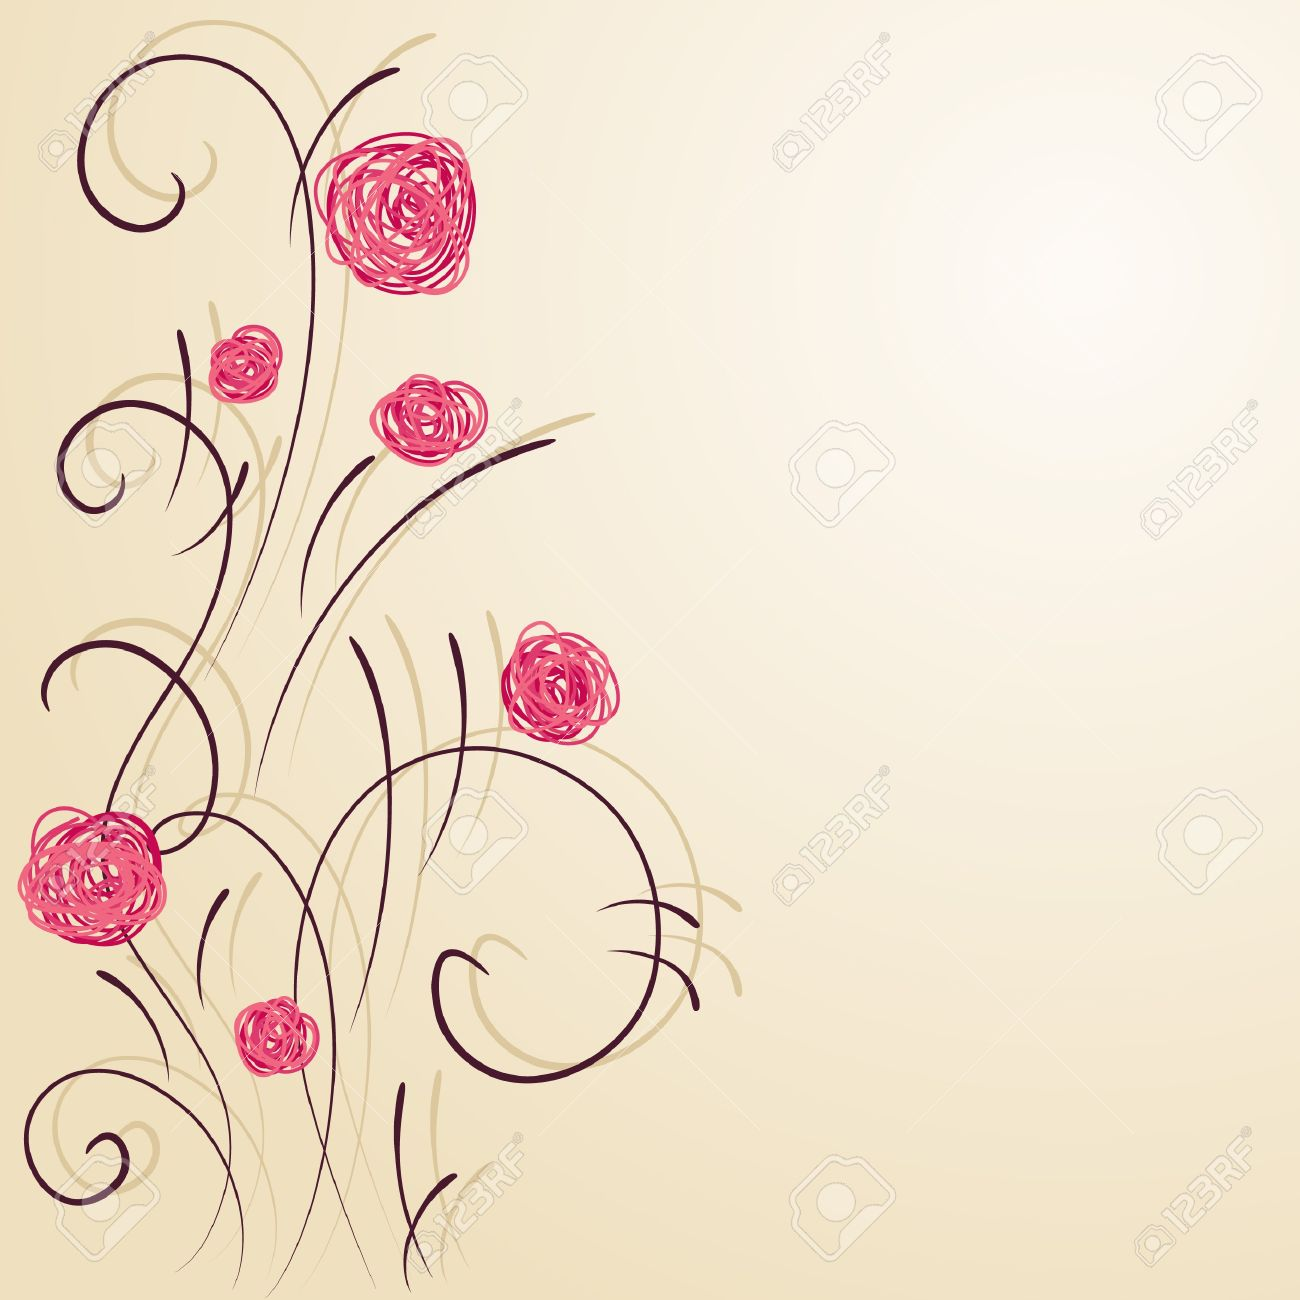 Floral Vector Wallpaper Royalty Free Cliparts Vectors And Stock Illustration Image 9491334